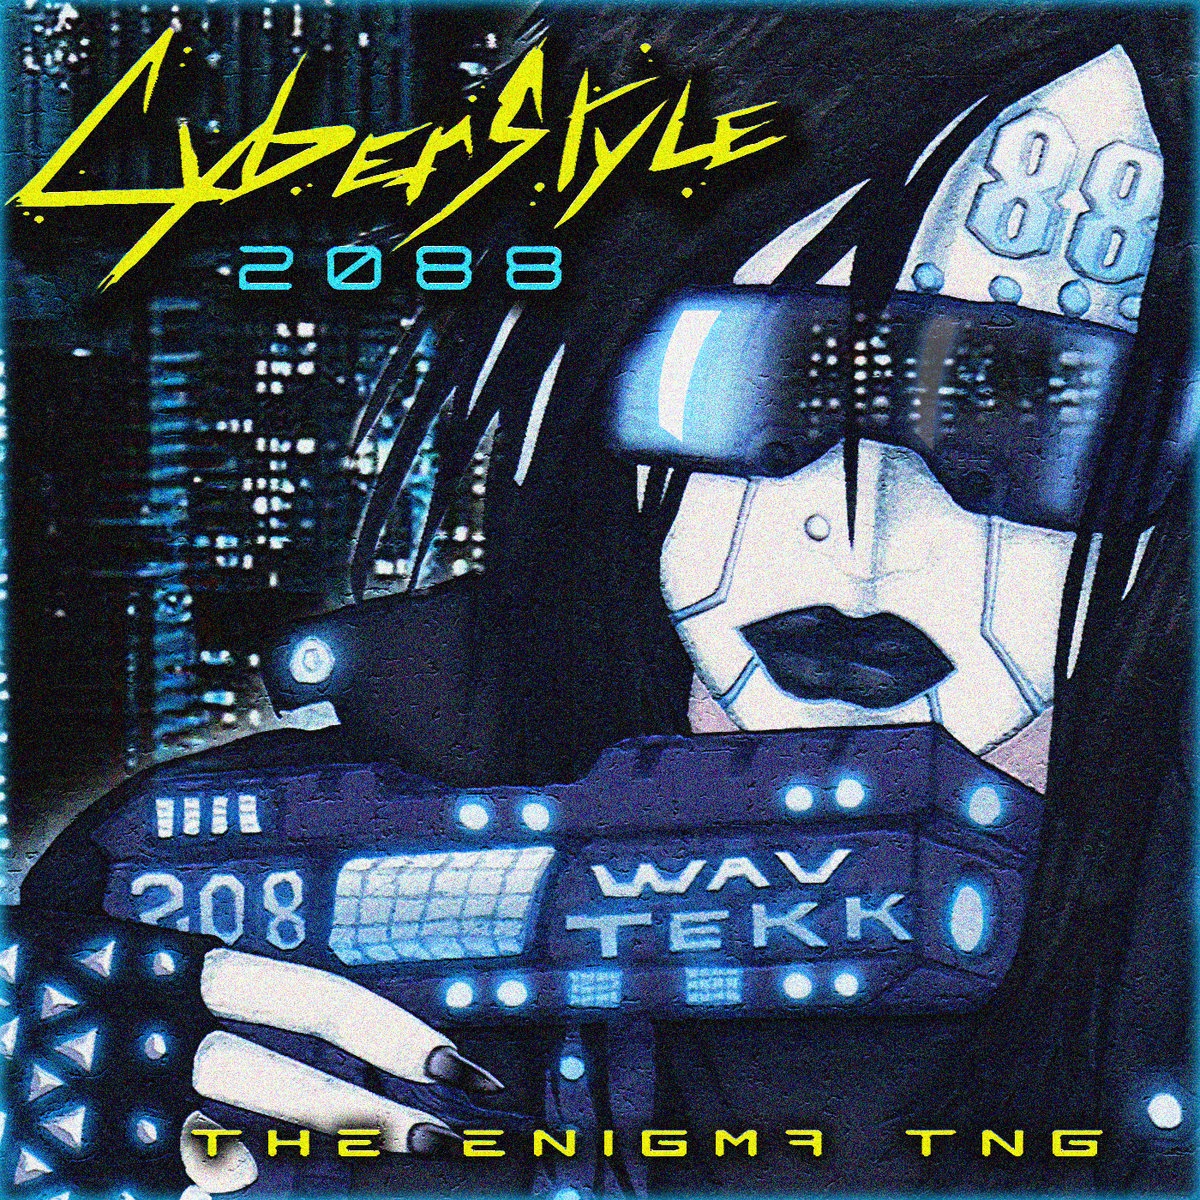 Cyberstyle 2088 | The Enigma TNG